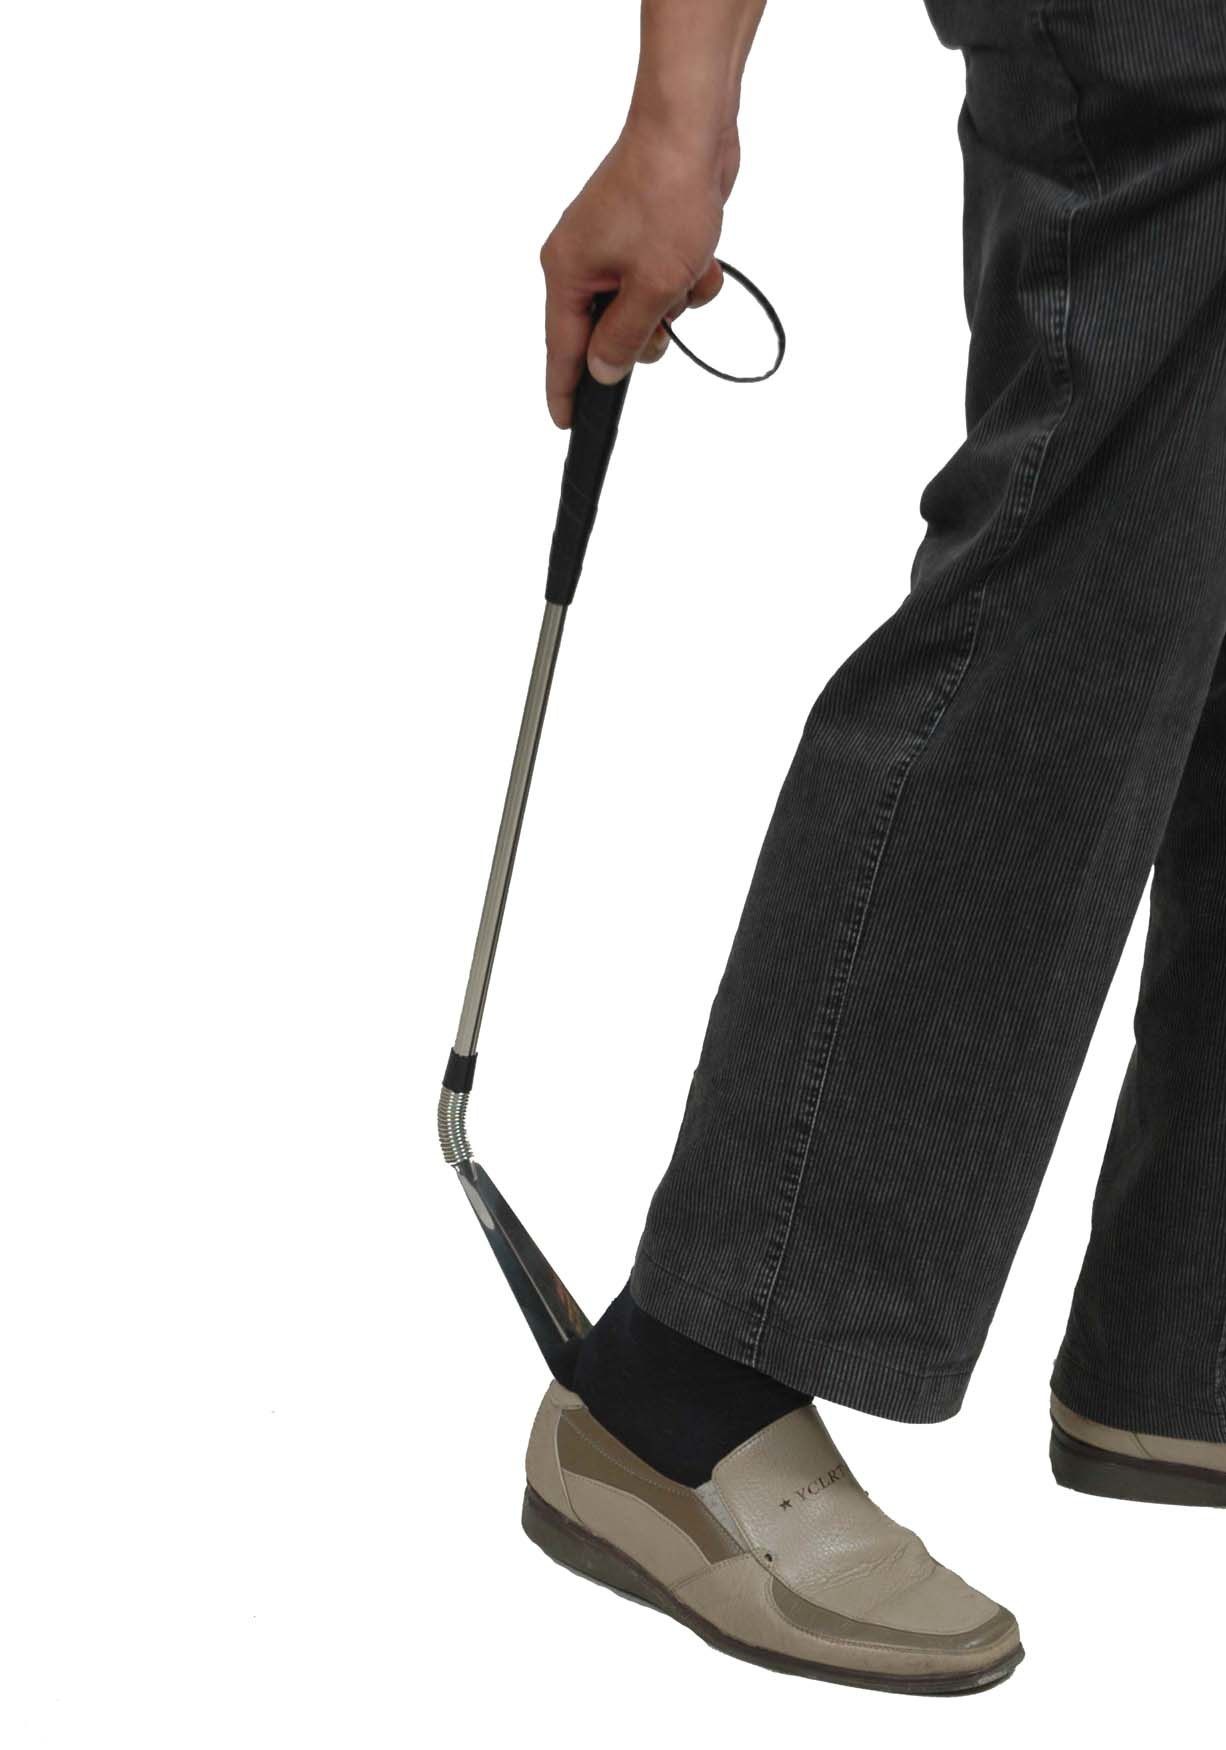 China long shoe horn china telescopic gadgets health care appliance